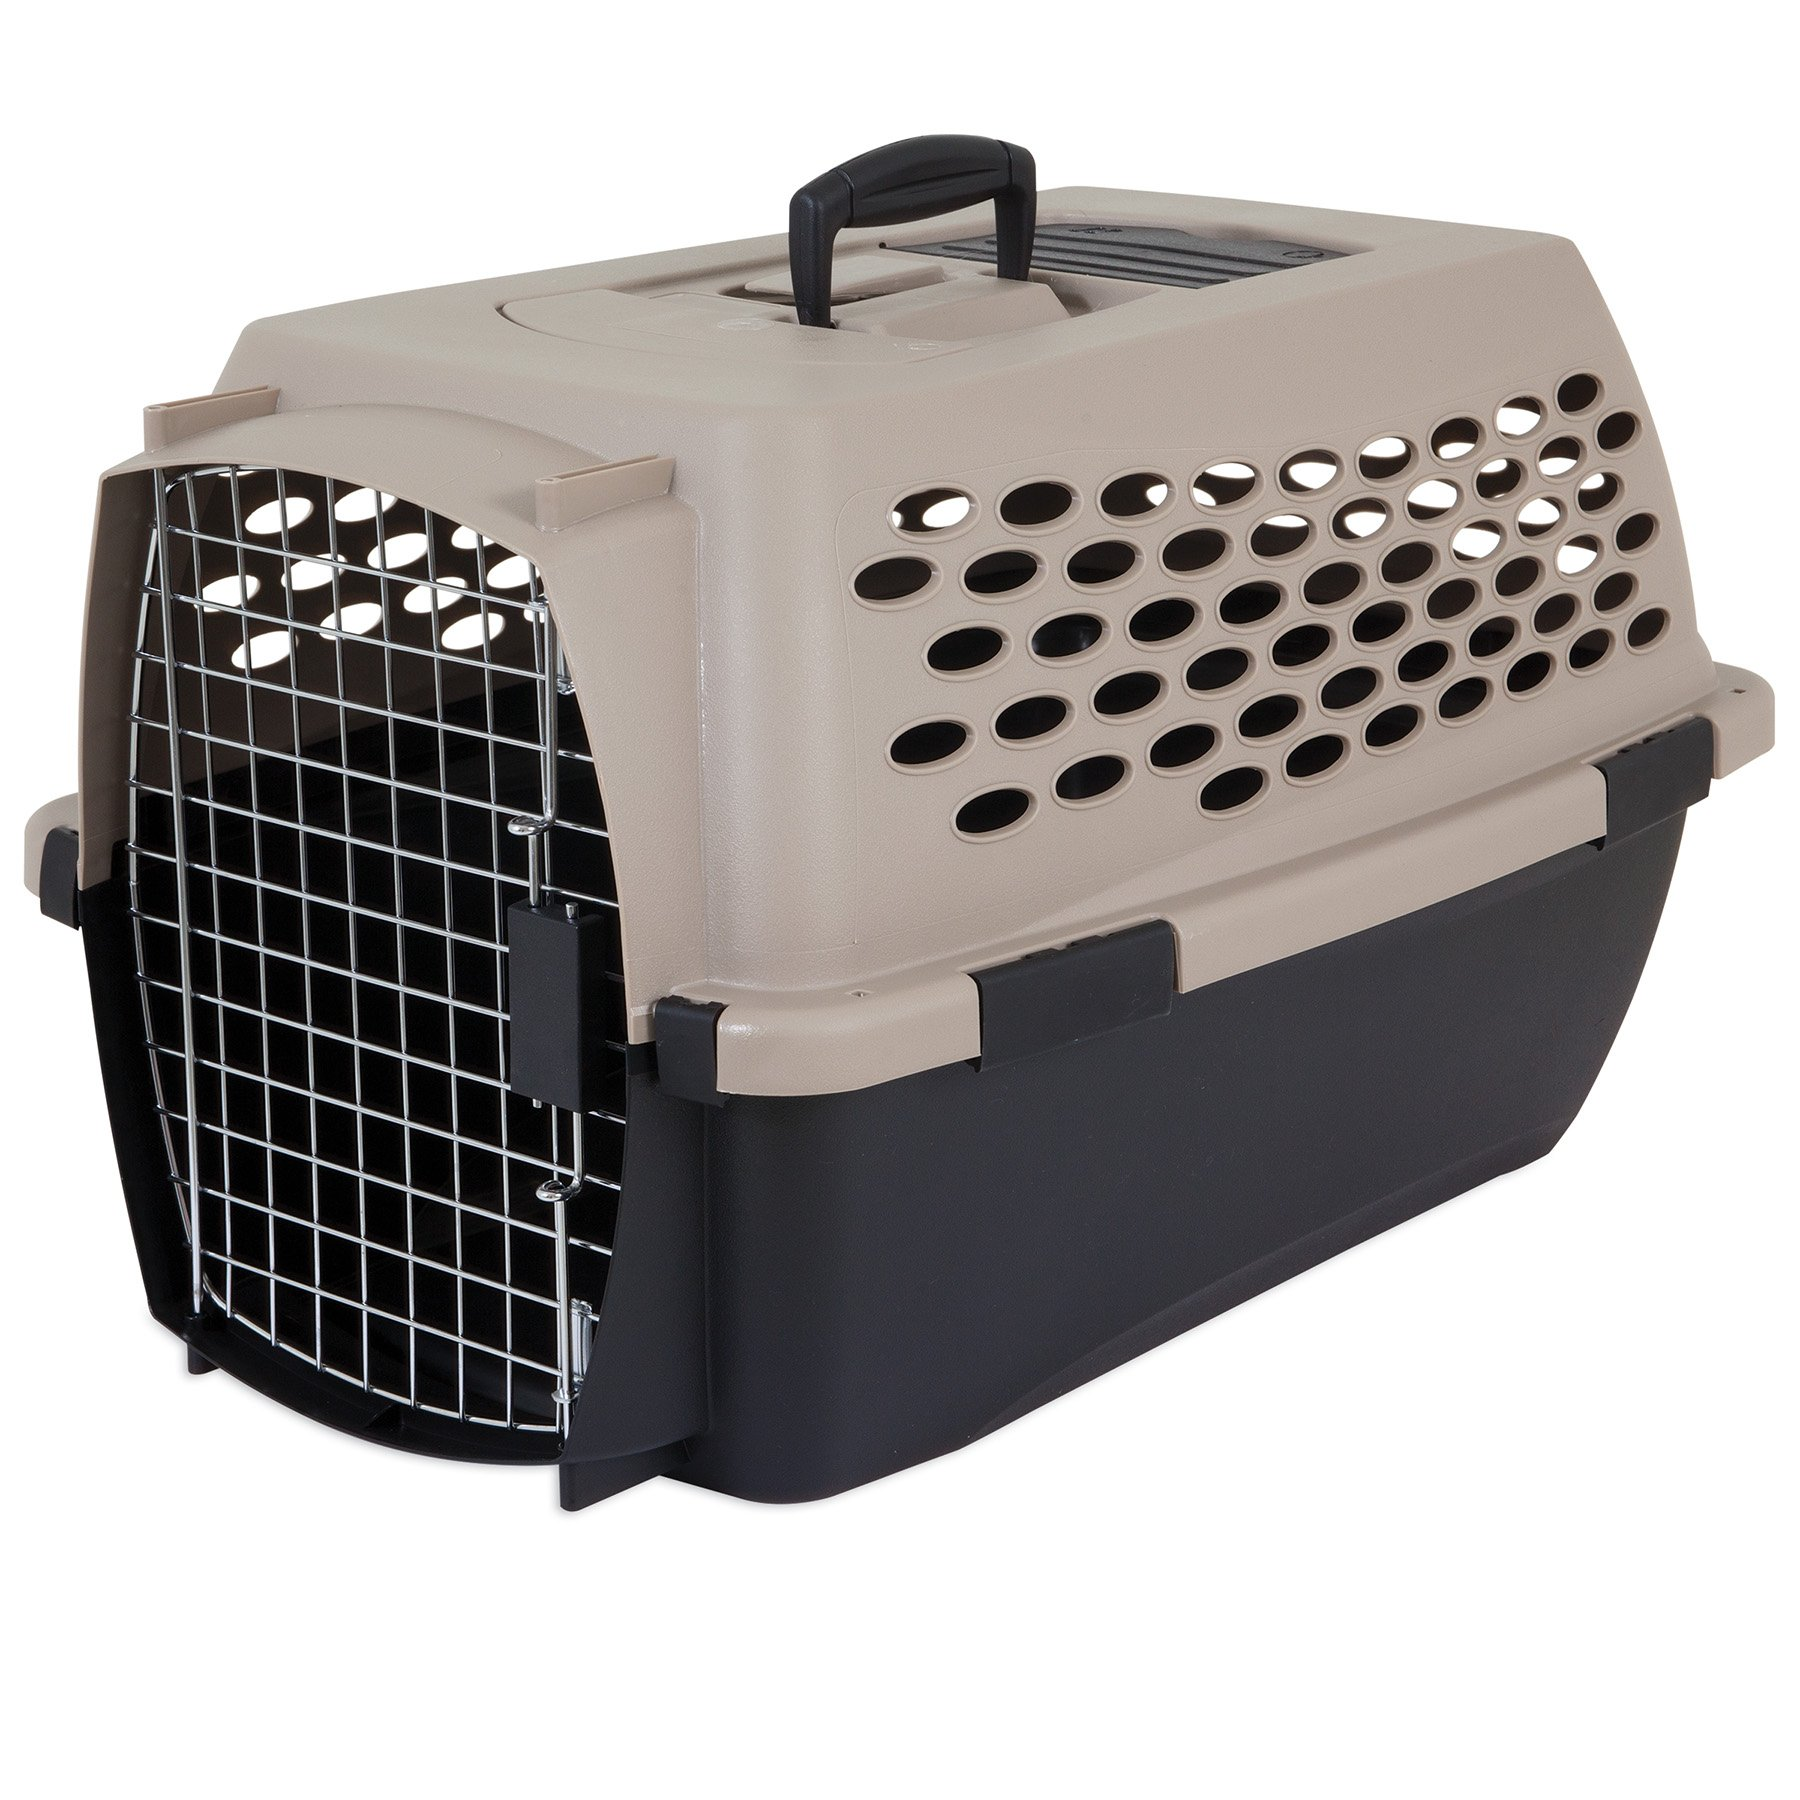 Petmate Vari Kennel Heavy-Duty Dog Travel Crate No-Tool Assembly 2 Sizes 2 Colors by Petmate